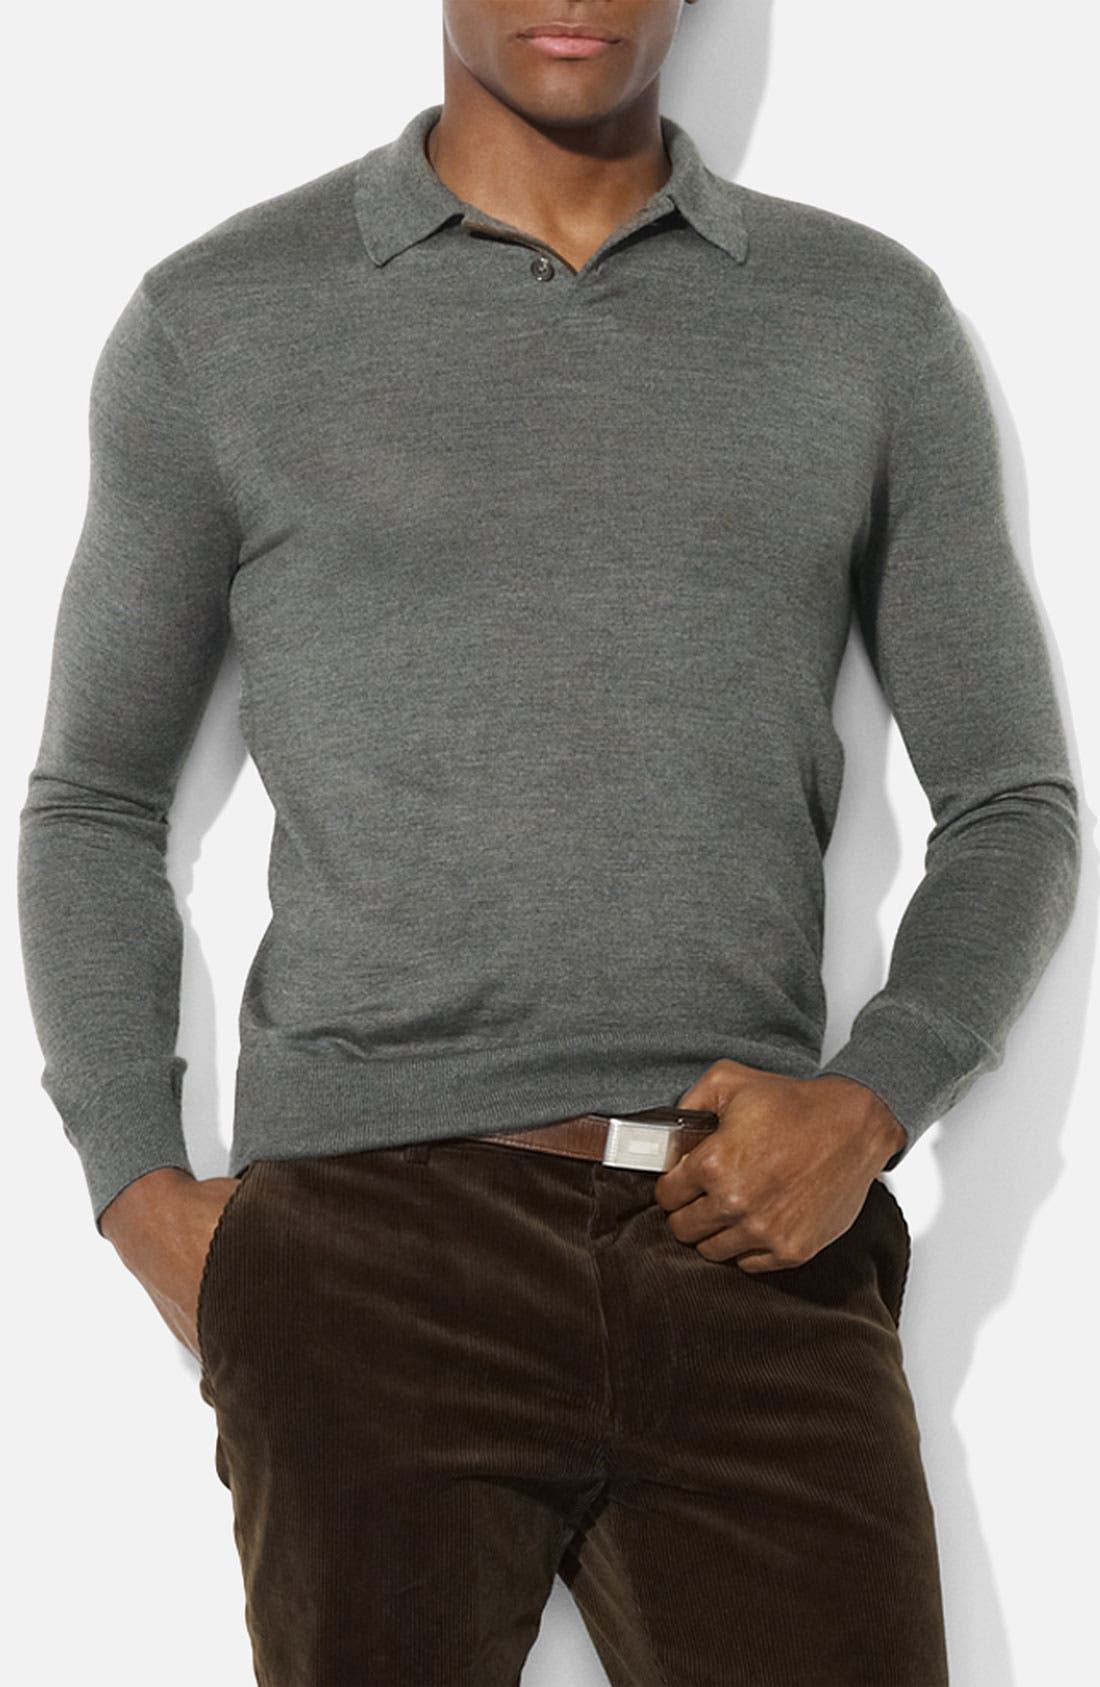 Alternate Image 1 Selected - Polo Ralph Lauren Trim Fit Polo Sweater